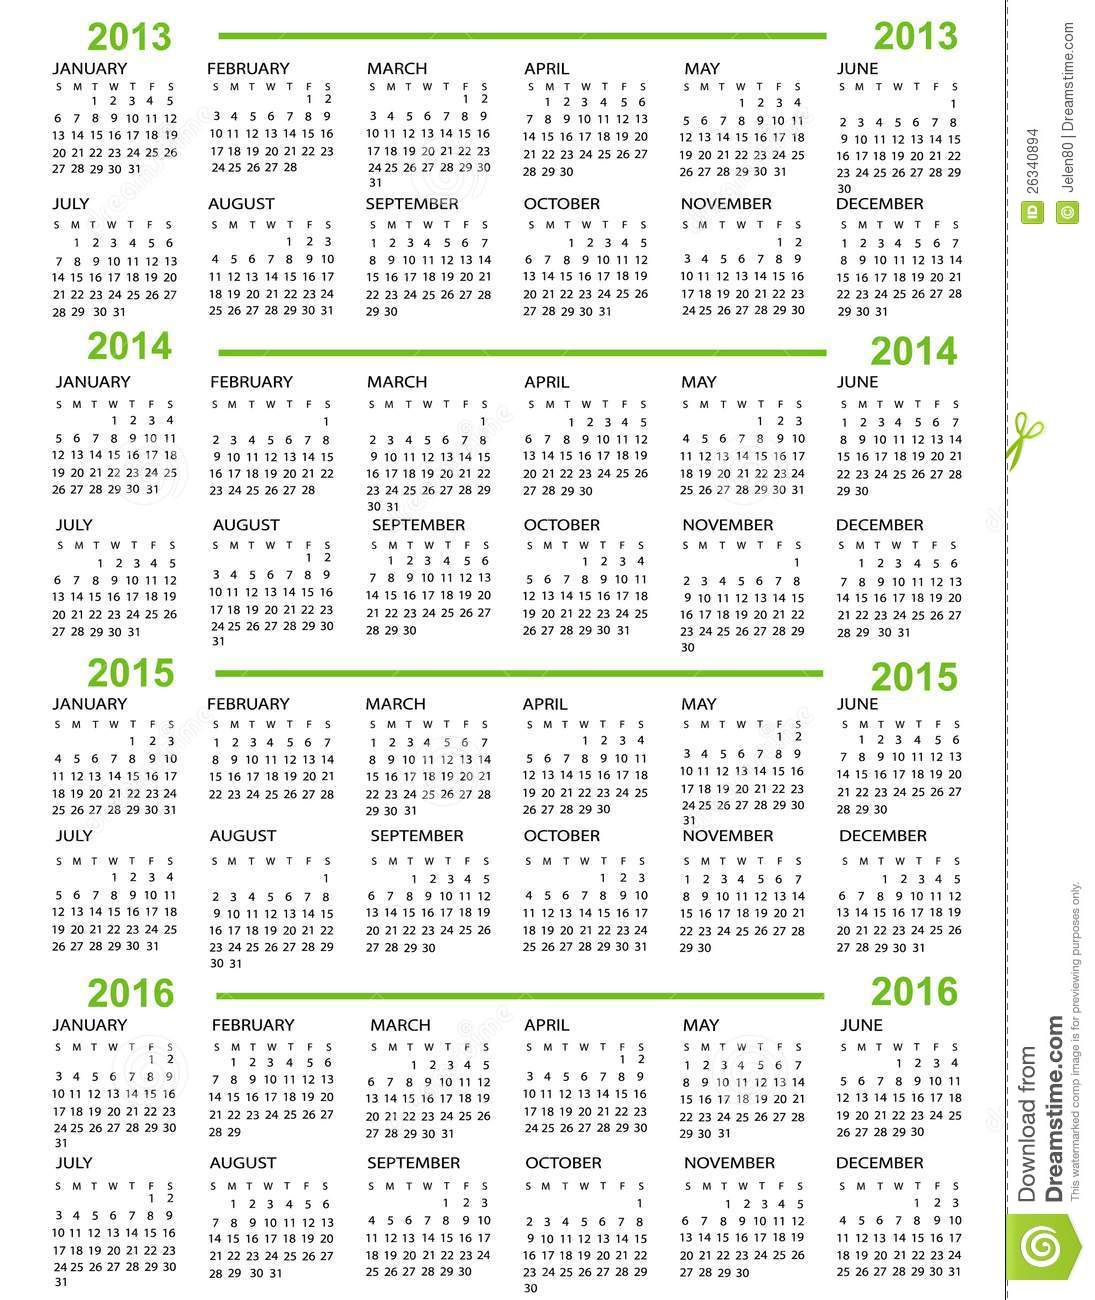 kalender nieuwjaar 2013 2014 2015 2016 stock afbeeldingen afbeelding 26340894. Black Bedroom Furniture Sets. Home Design Ideas